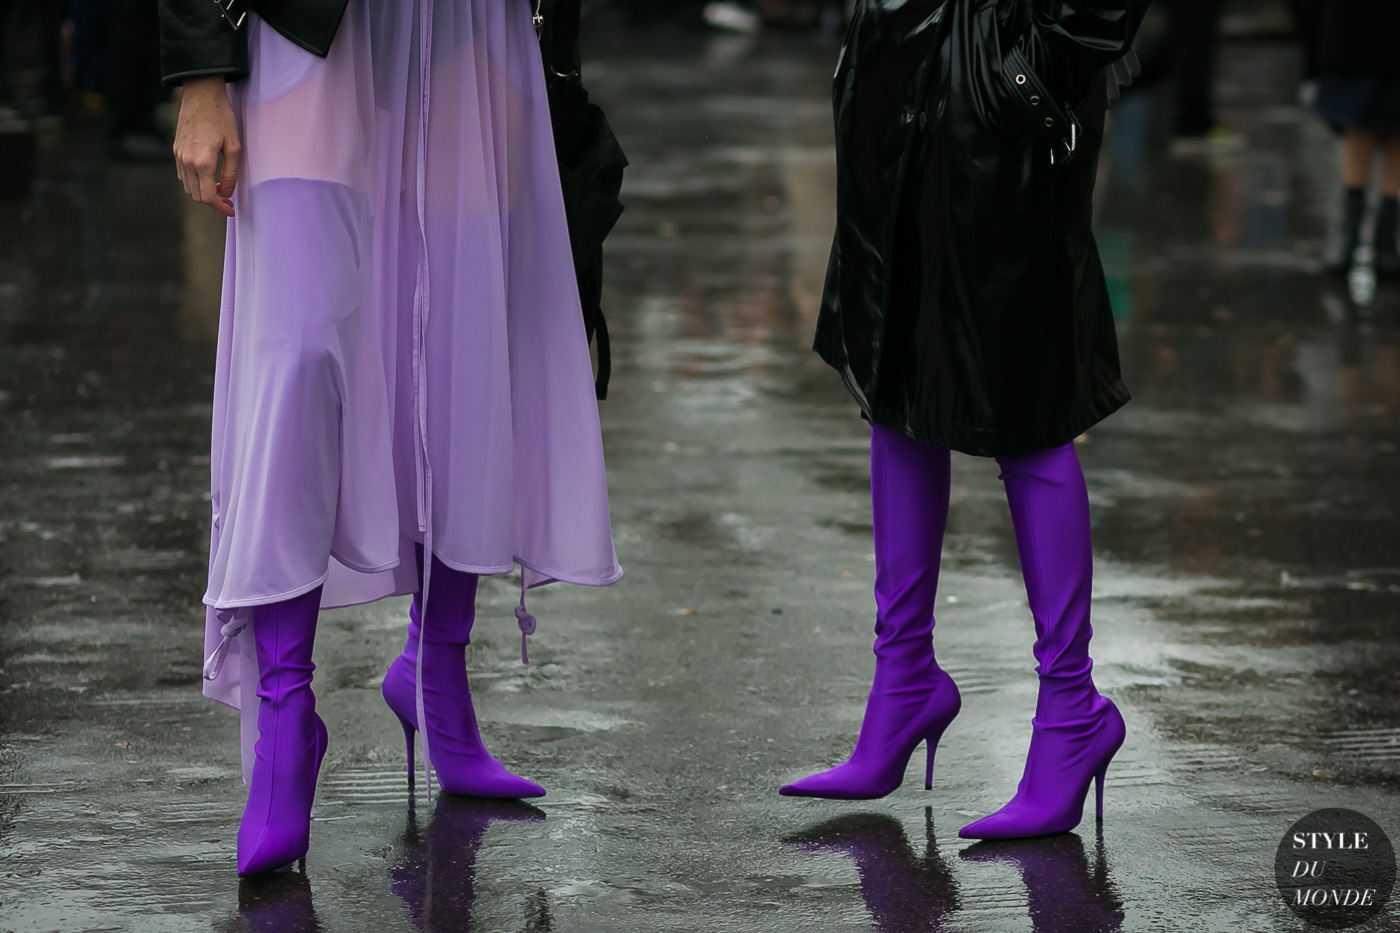 Balenciaga-boots-by-STYLEDUMONDE-Street-Style-Fashion-Photography0E2A0218